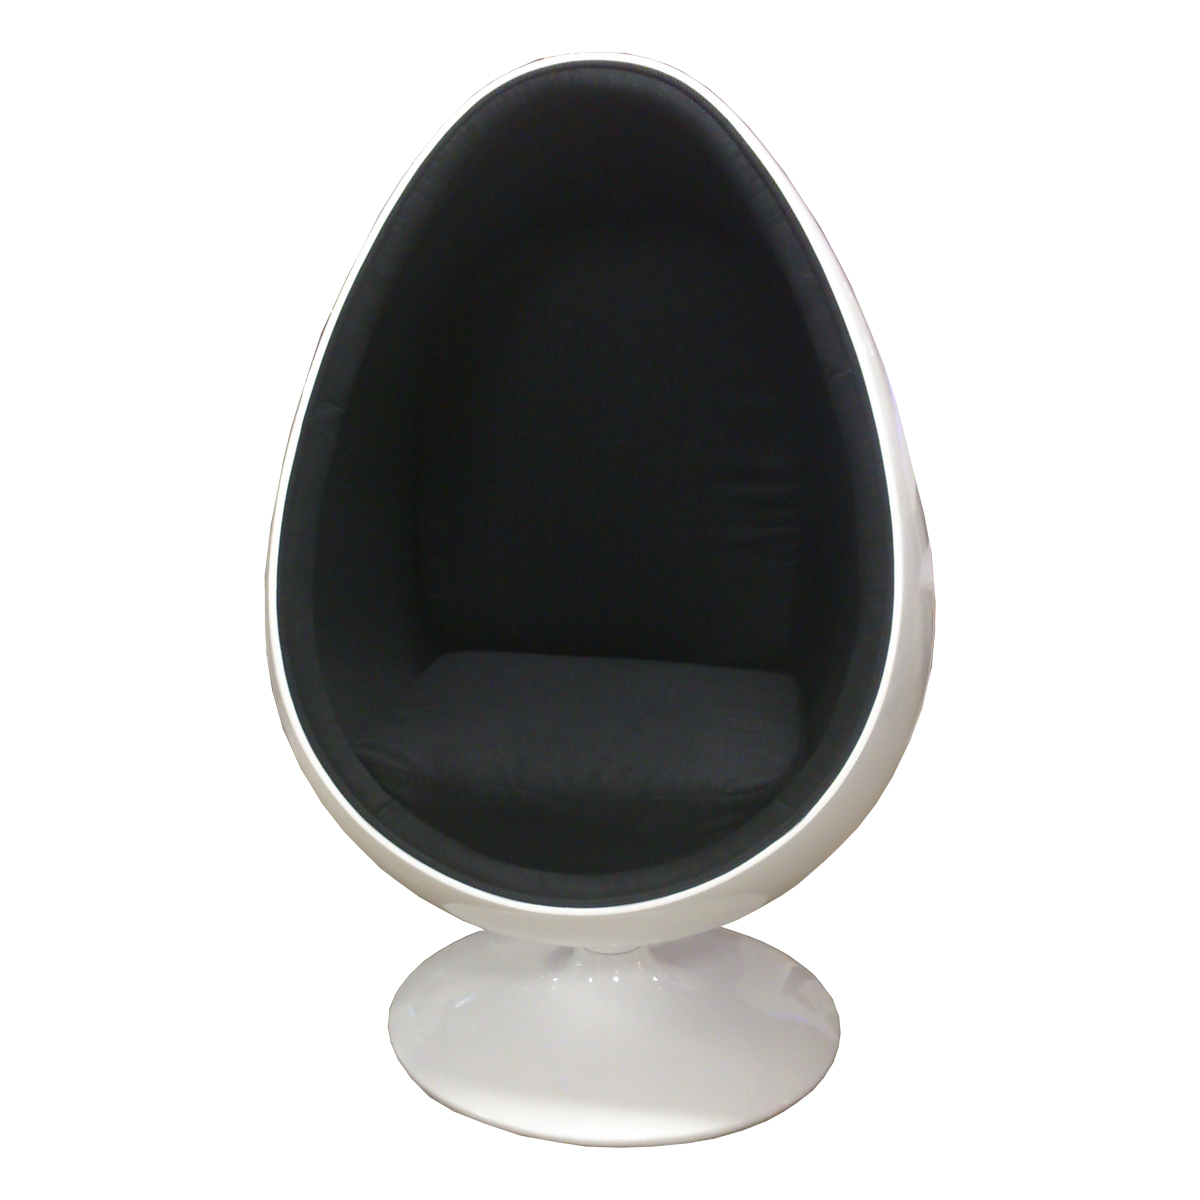 Lounge Sessel Retro Lounge Sessel Retro Design Sitzei Space Egg Glasfaser